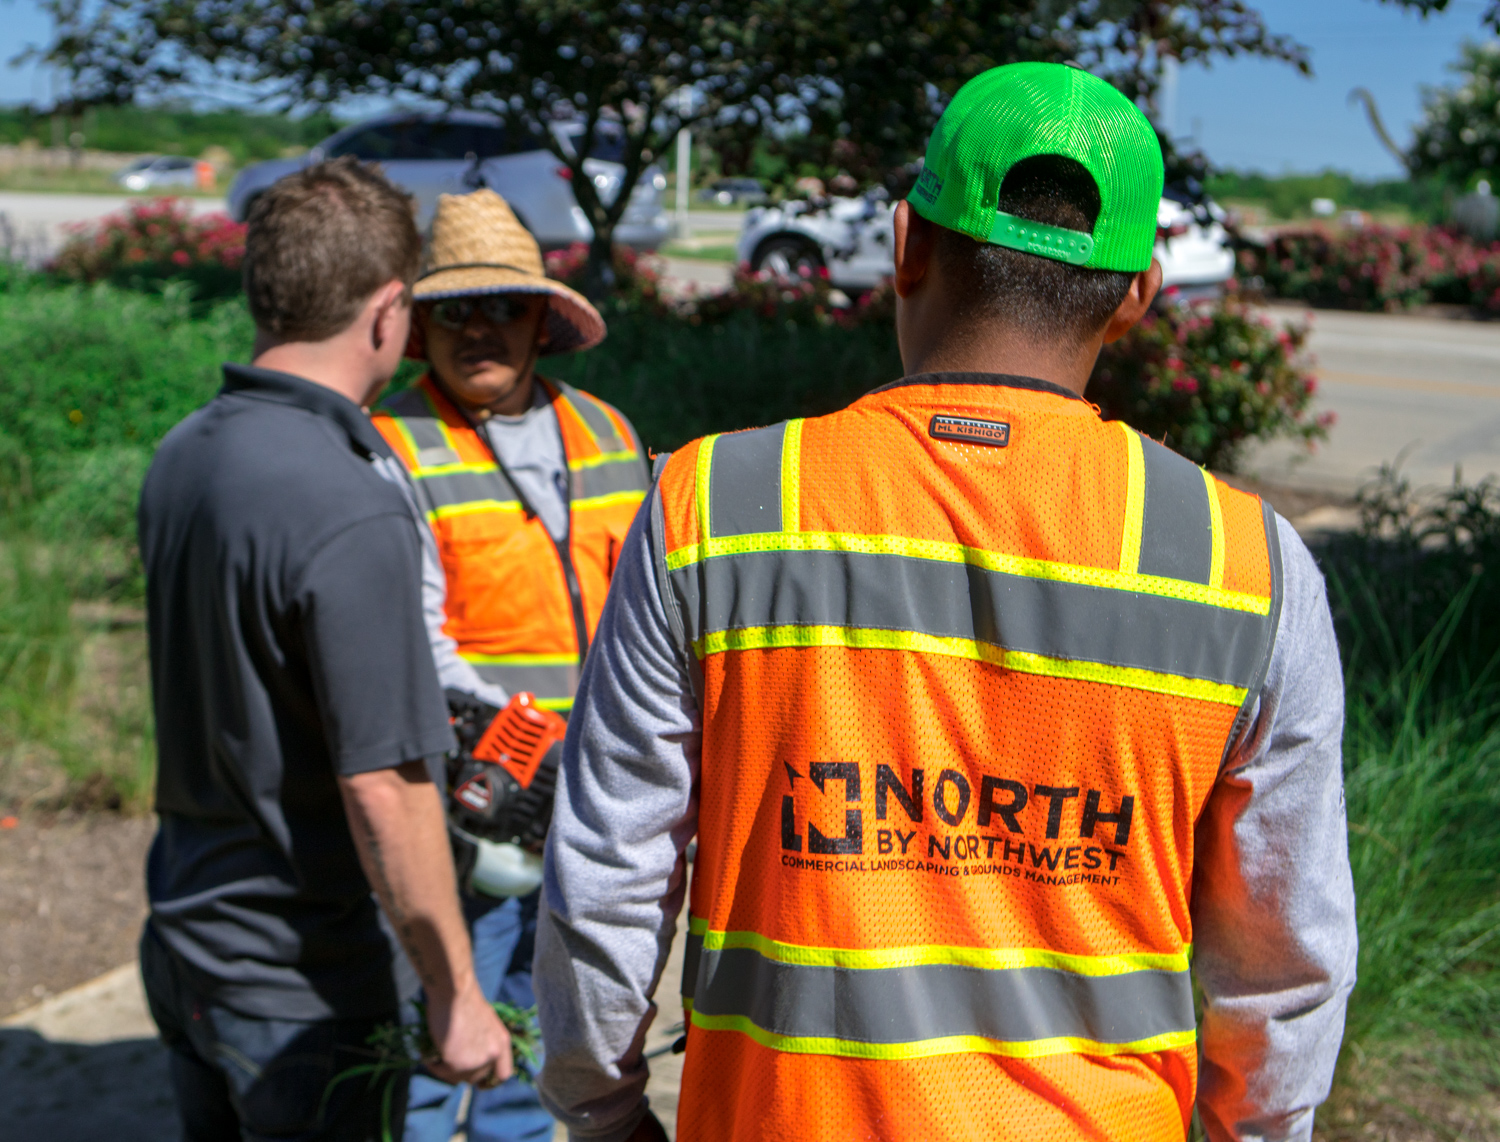 North By Northwest commercial landscapers working